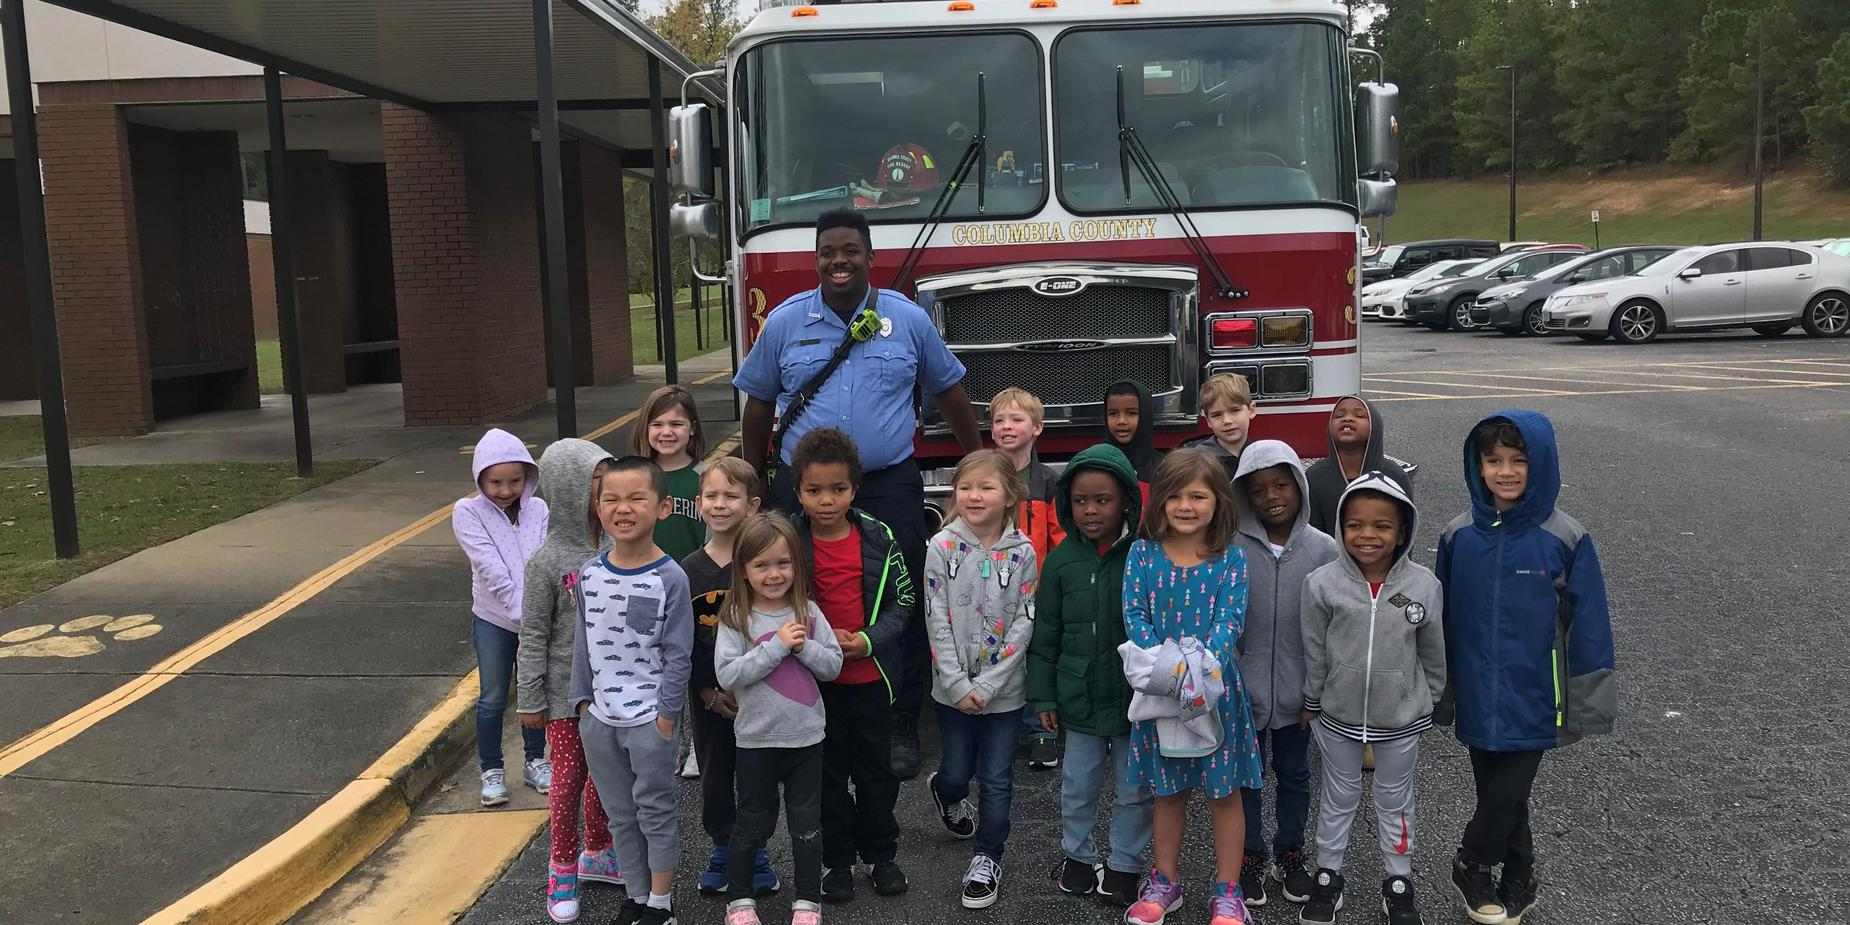 Columbia County Fire Truck visits BRE!